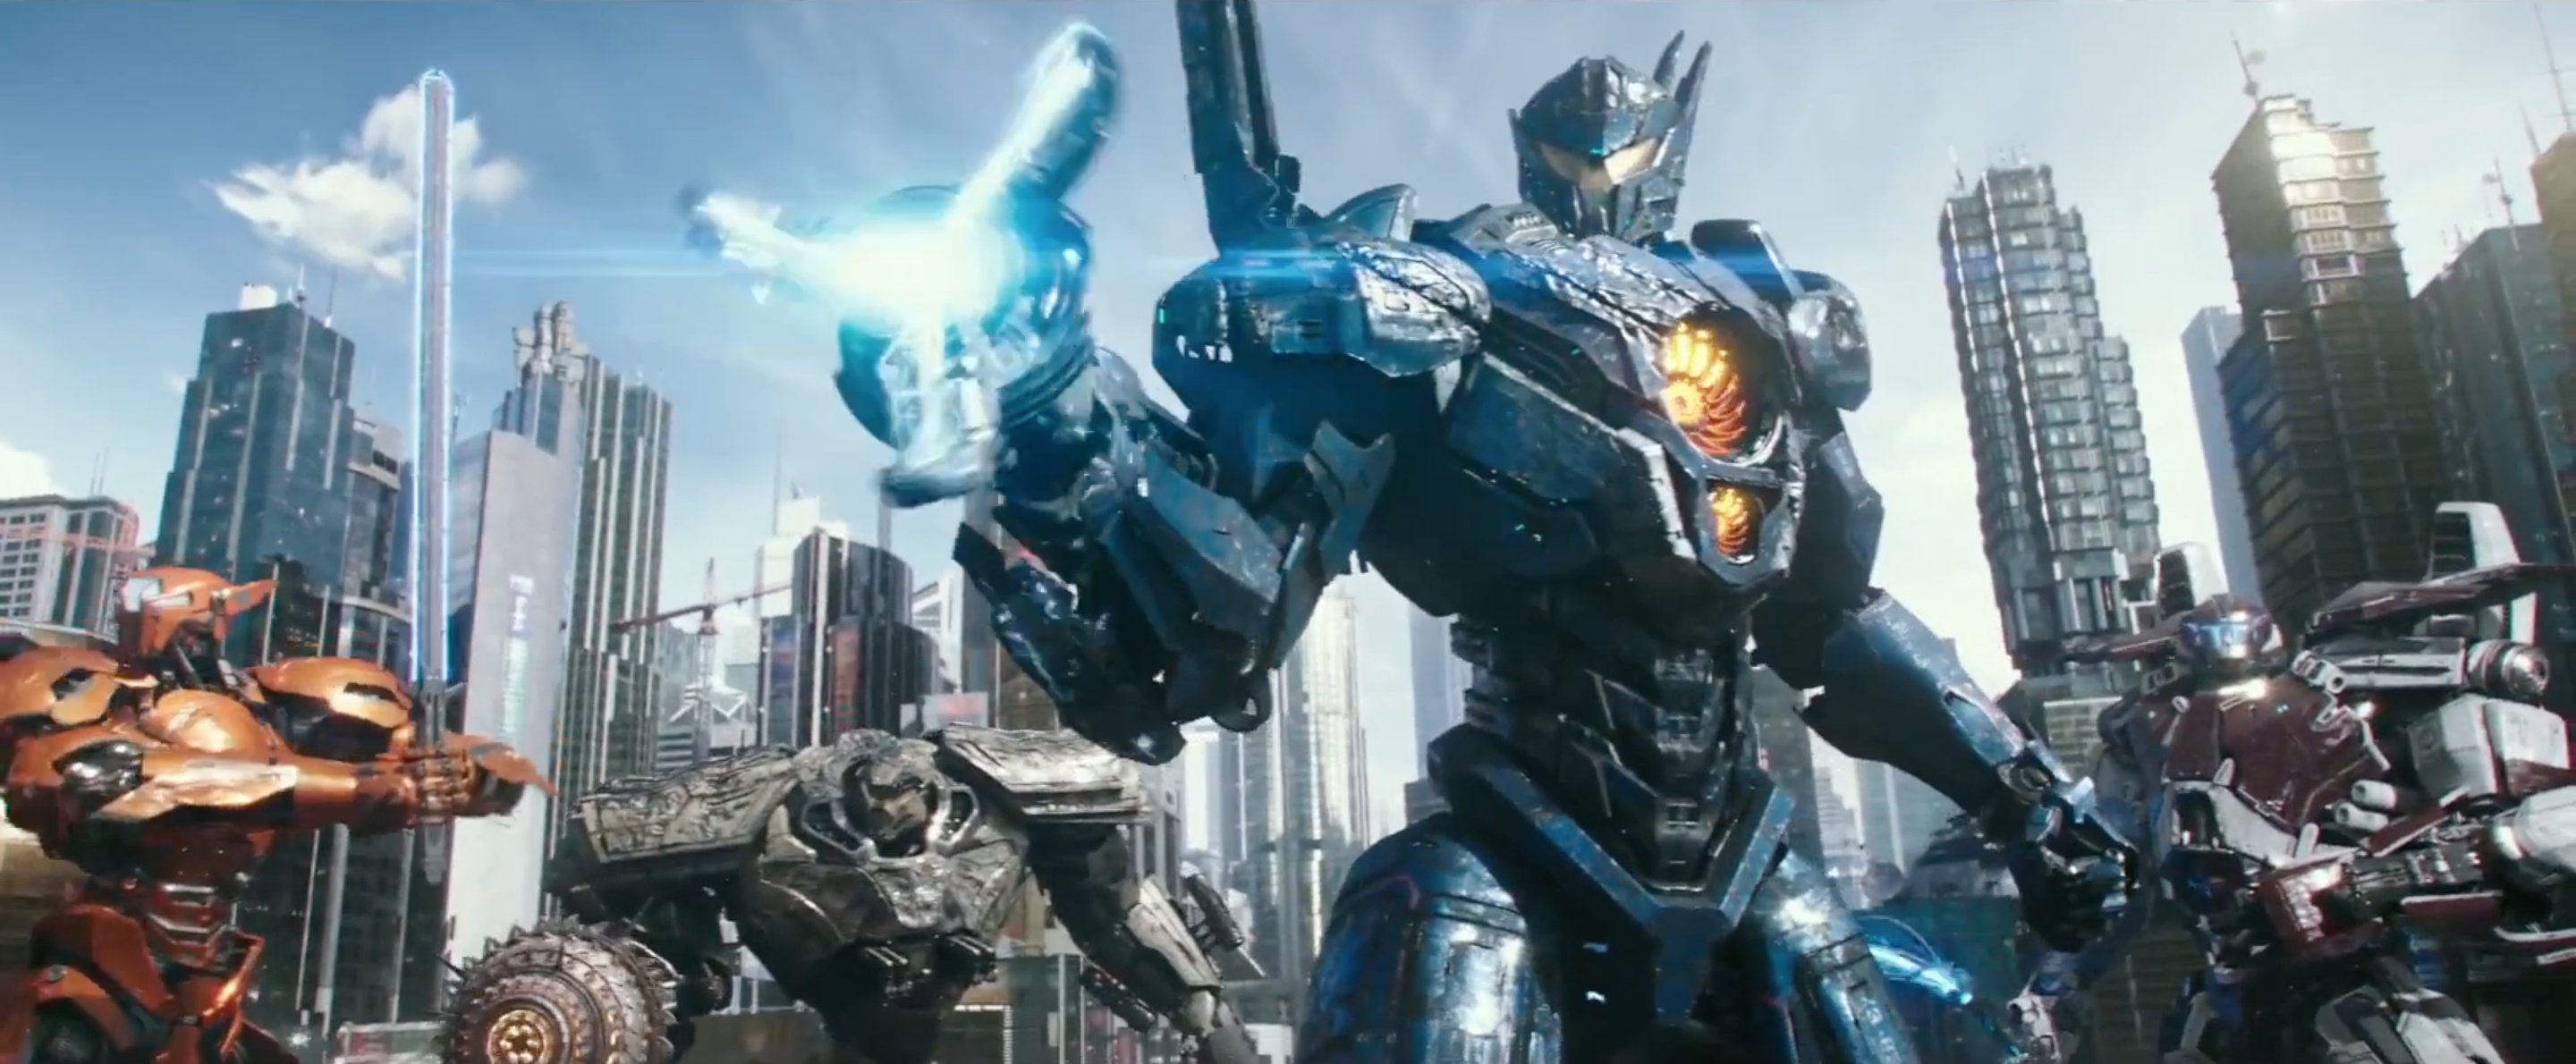 'Pacific Rim Uprising' Already Dated For Home Video ...